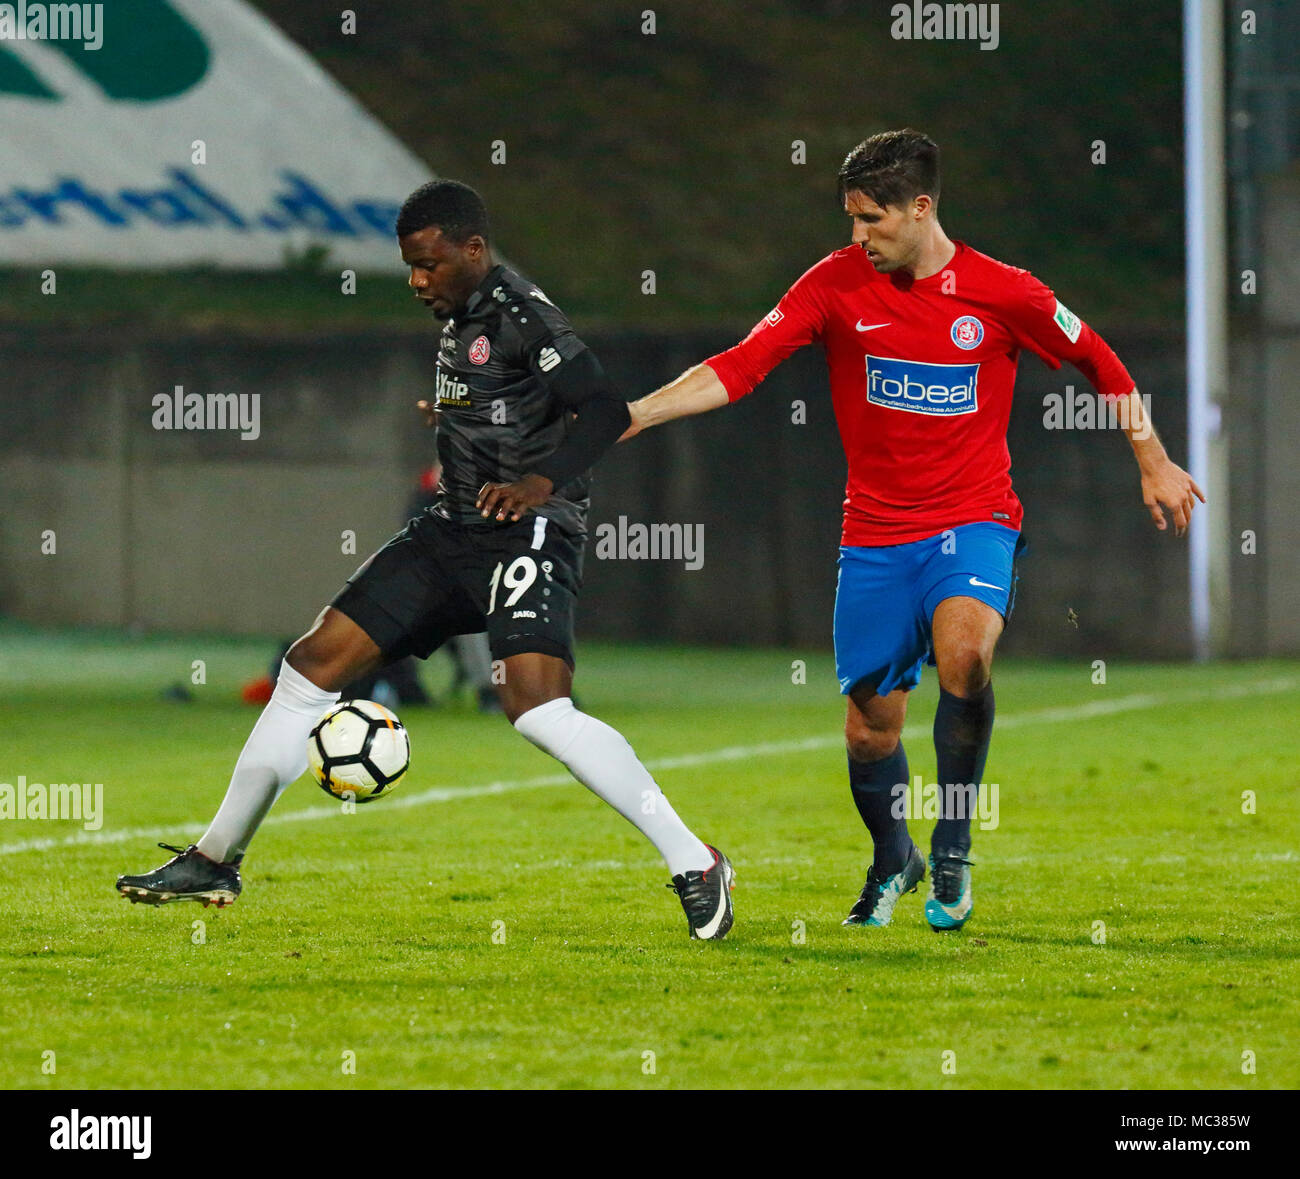 sports, football, Regional League West, 2017/2018, Wuppertaler SV vs Rot Weiss Essen 3:1, scene of the match, Hontcheu Ngankam (RWE) left and Gino Windmueller (WSV) - Stock Image